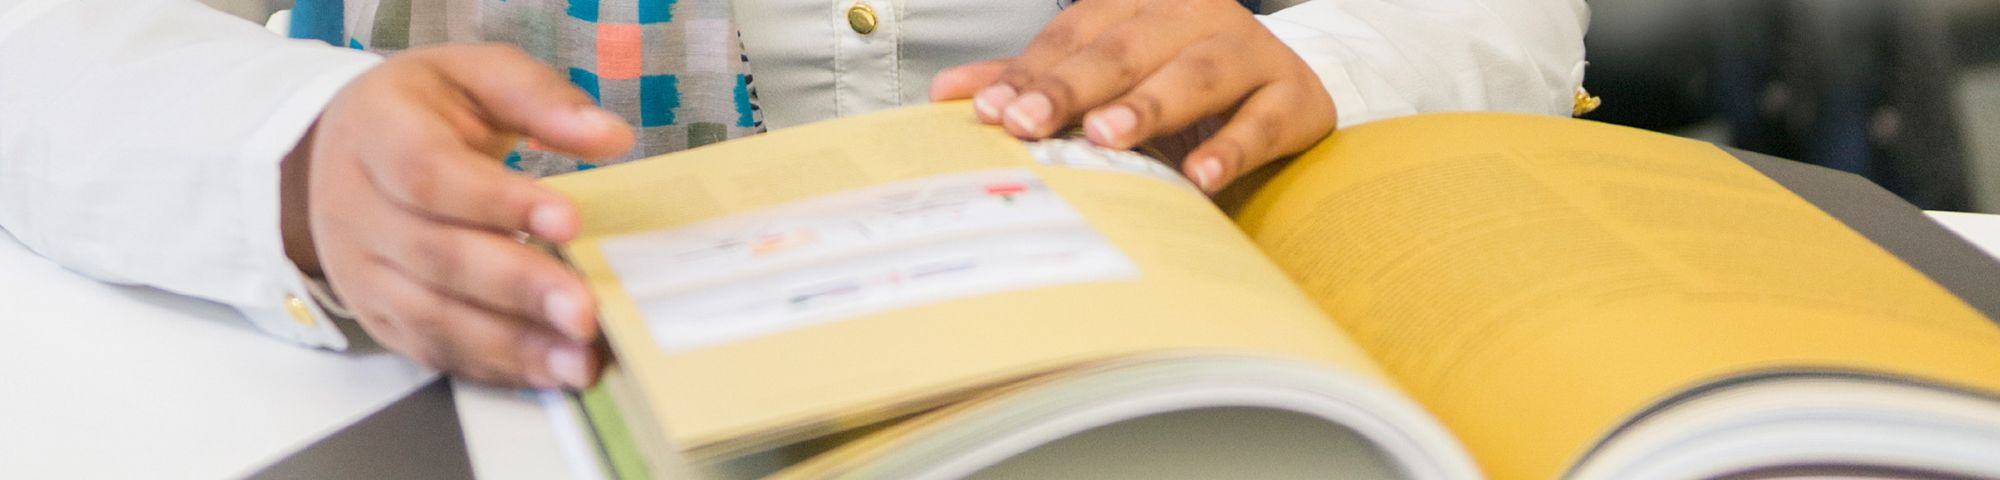 Close up shot of a book on a table and a pair of hands holding it open